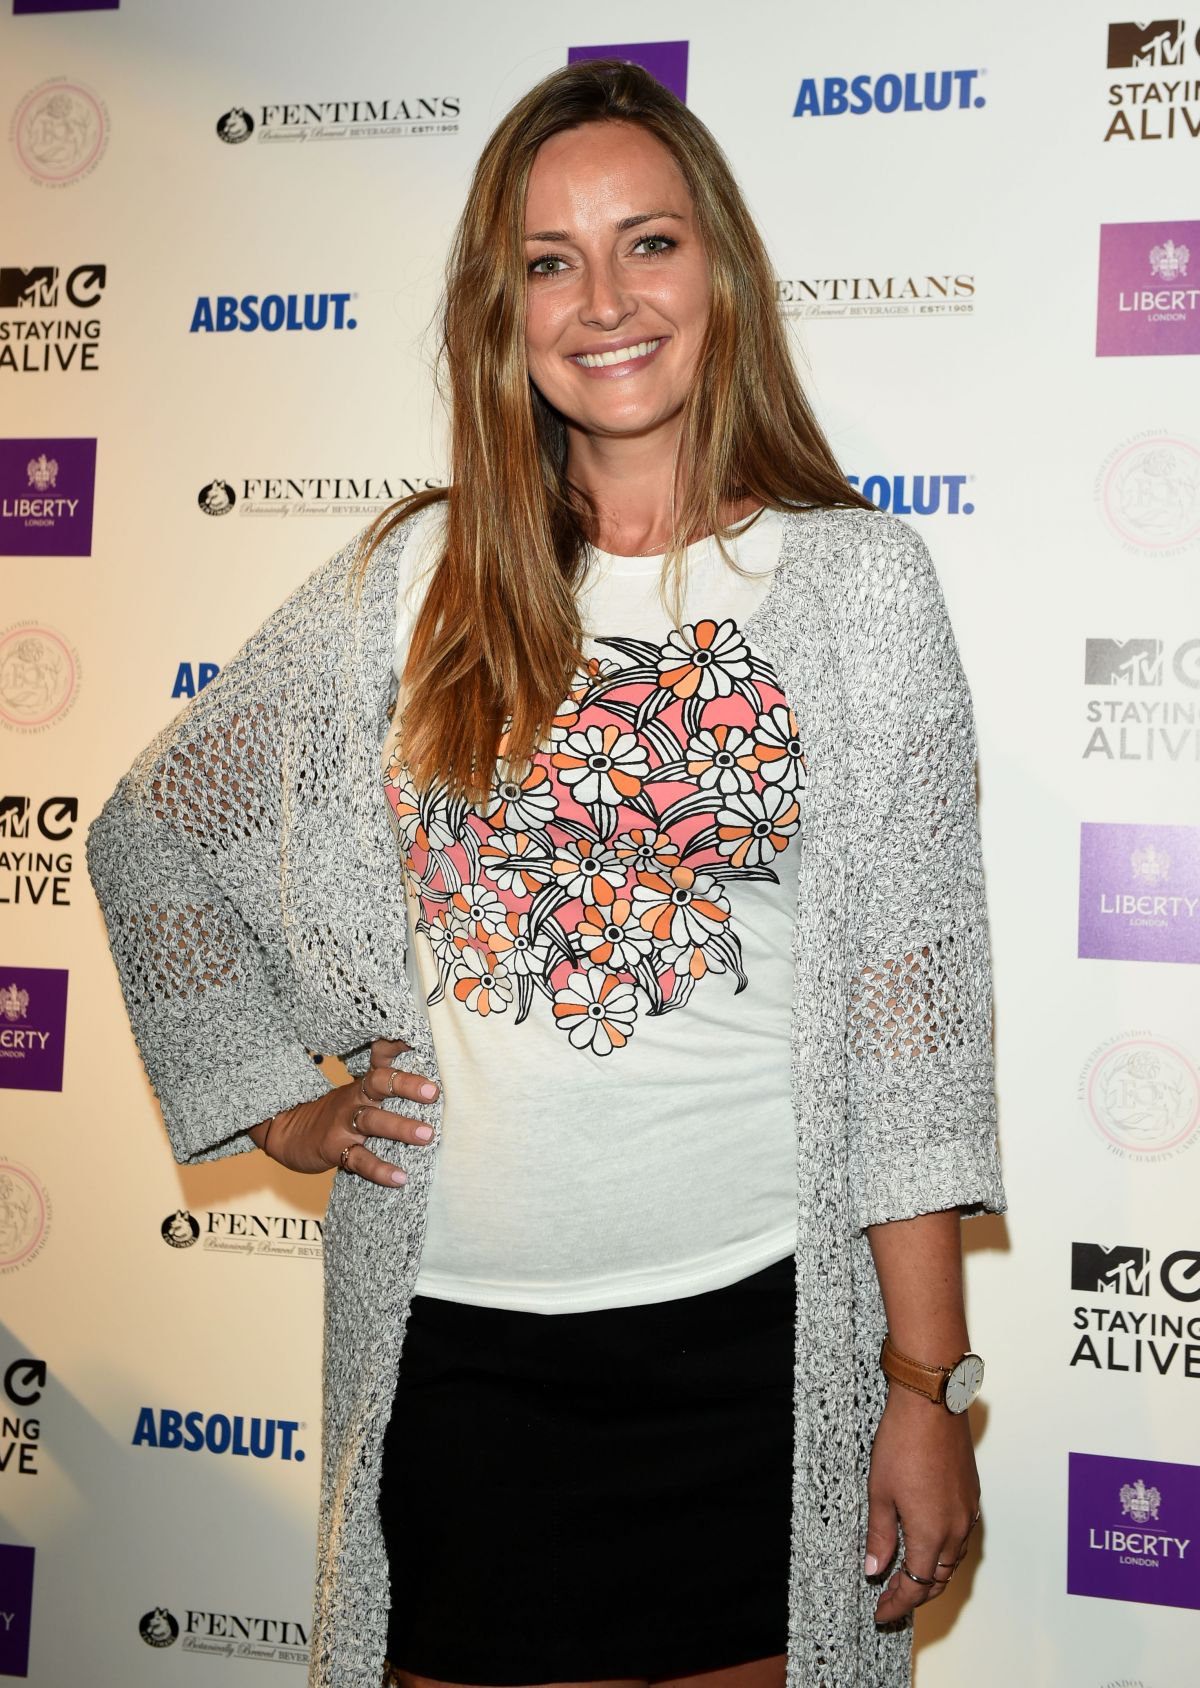 FRANCESCA NEWMAN-YOUNG at MTV Staying Alive x Liberty London Cocktail Reception 07/13/2016